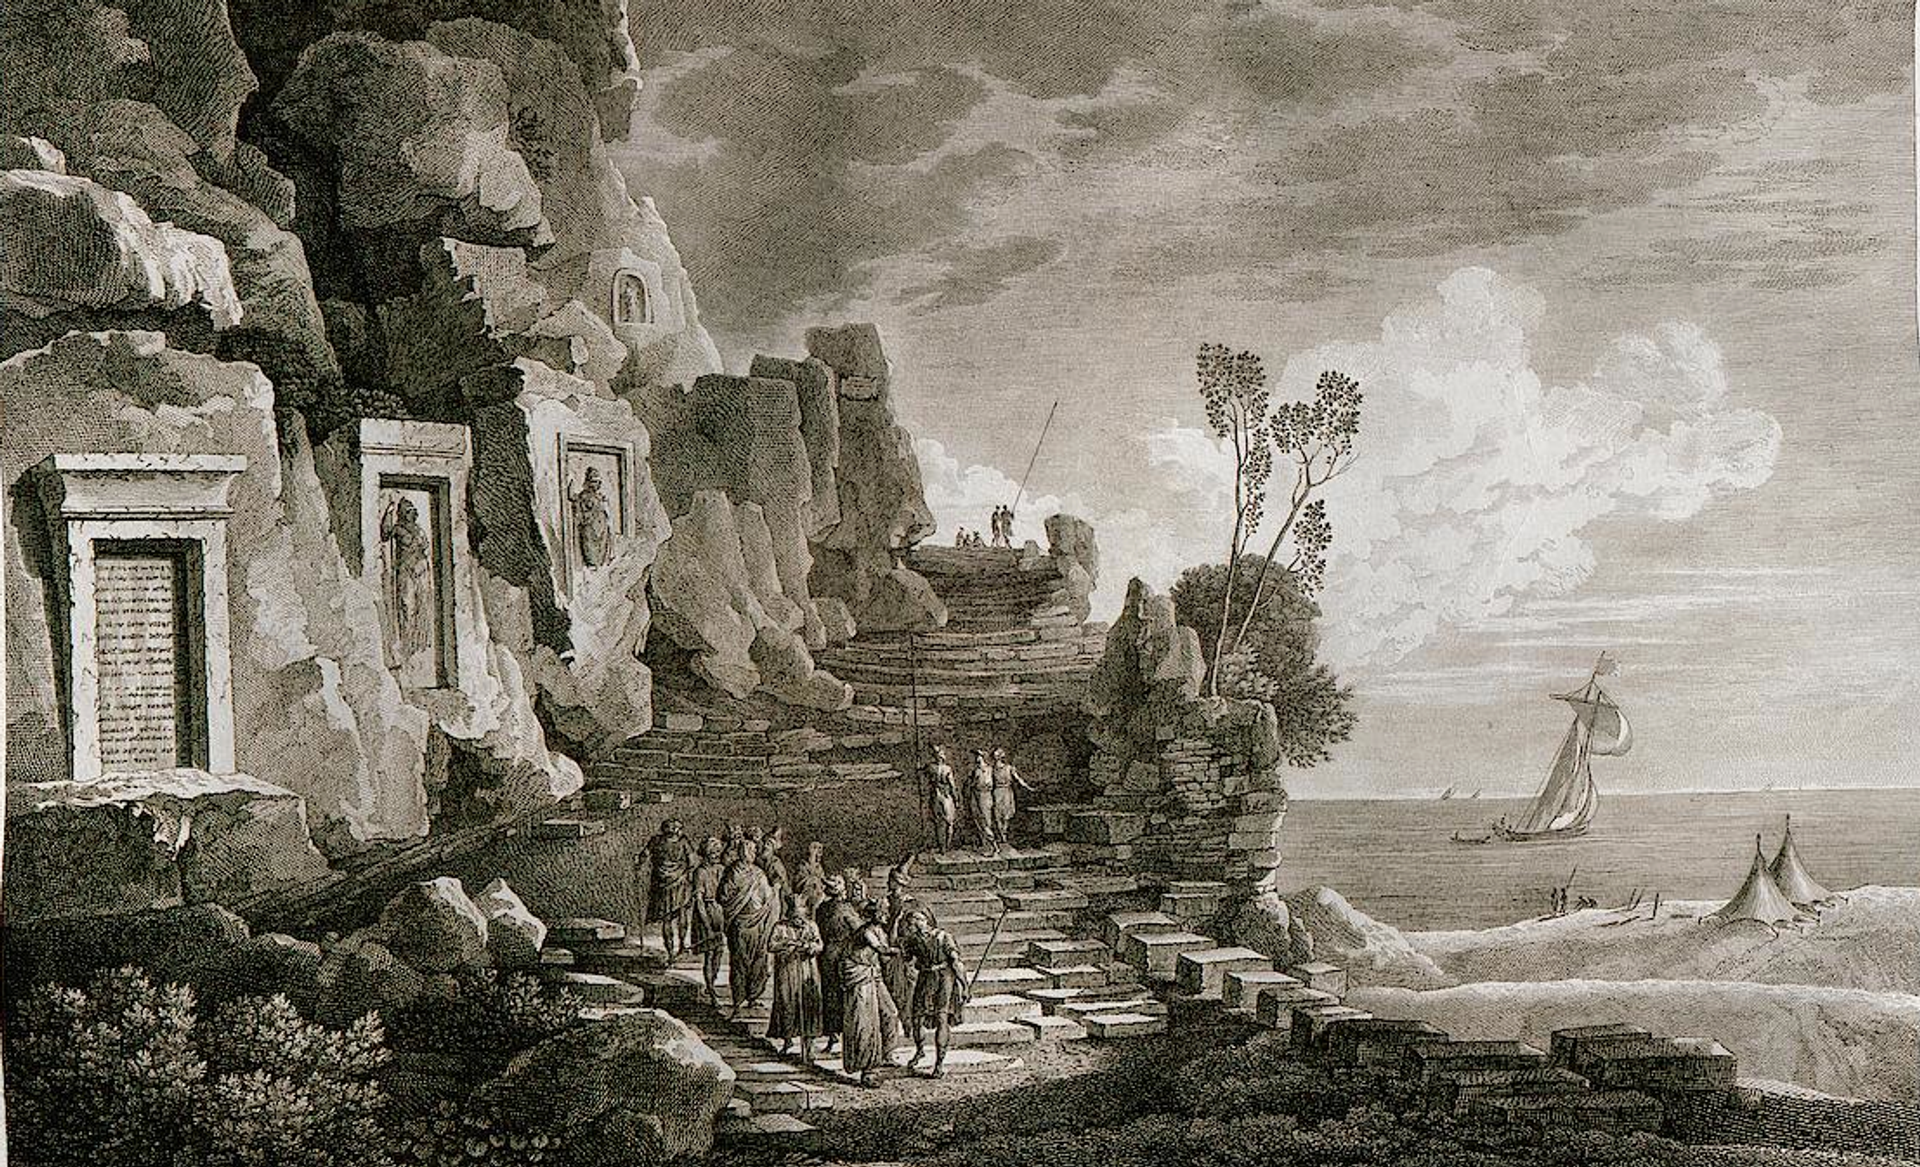 In this 1799 engraving by Louis François Cassas he depicts the Nahr el Kelb stalae